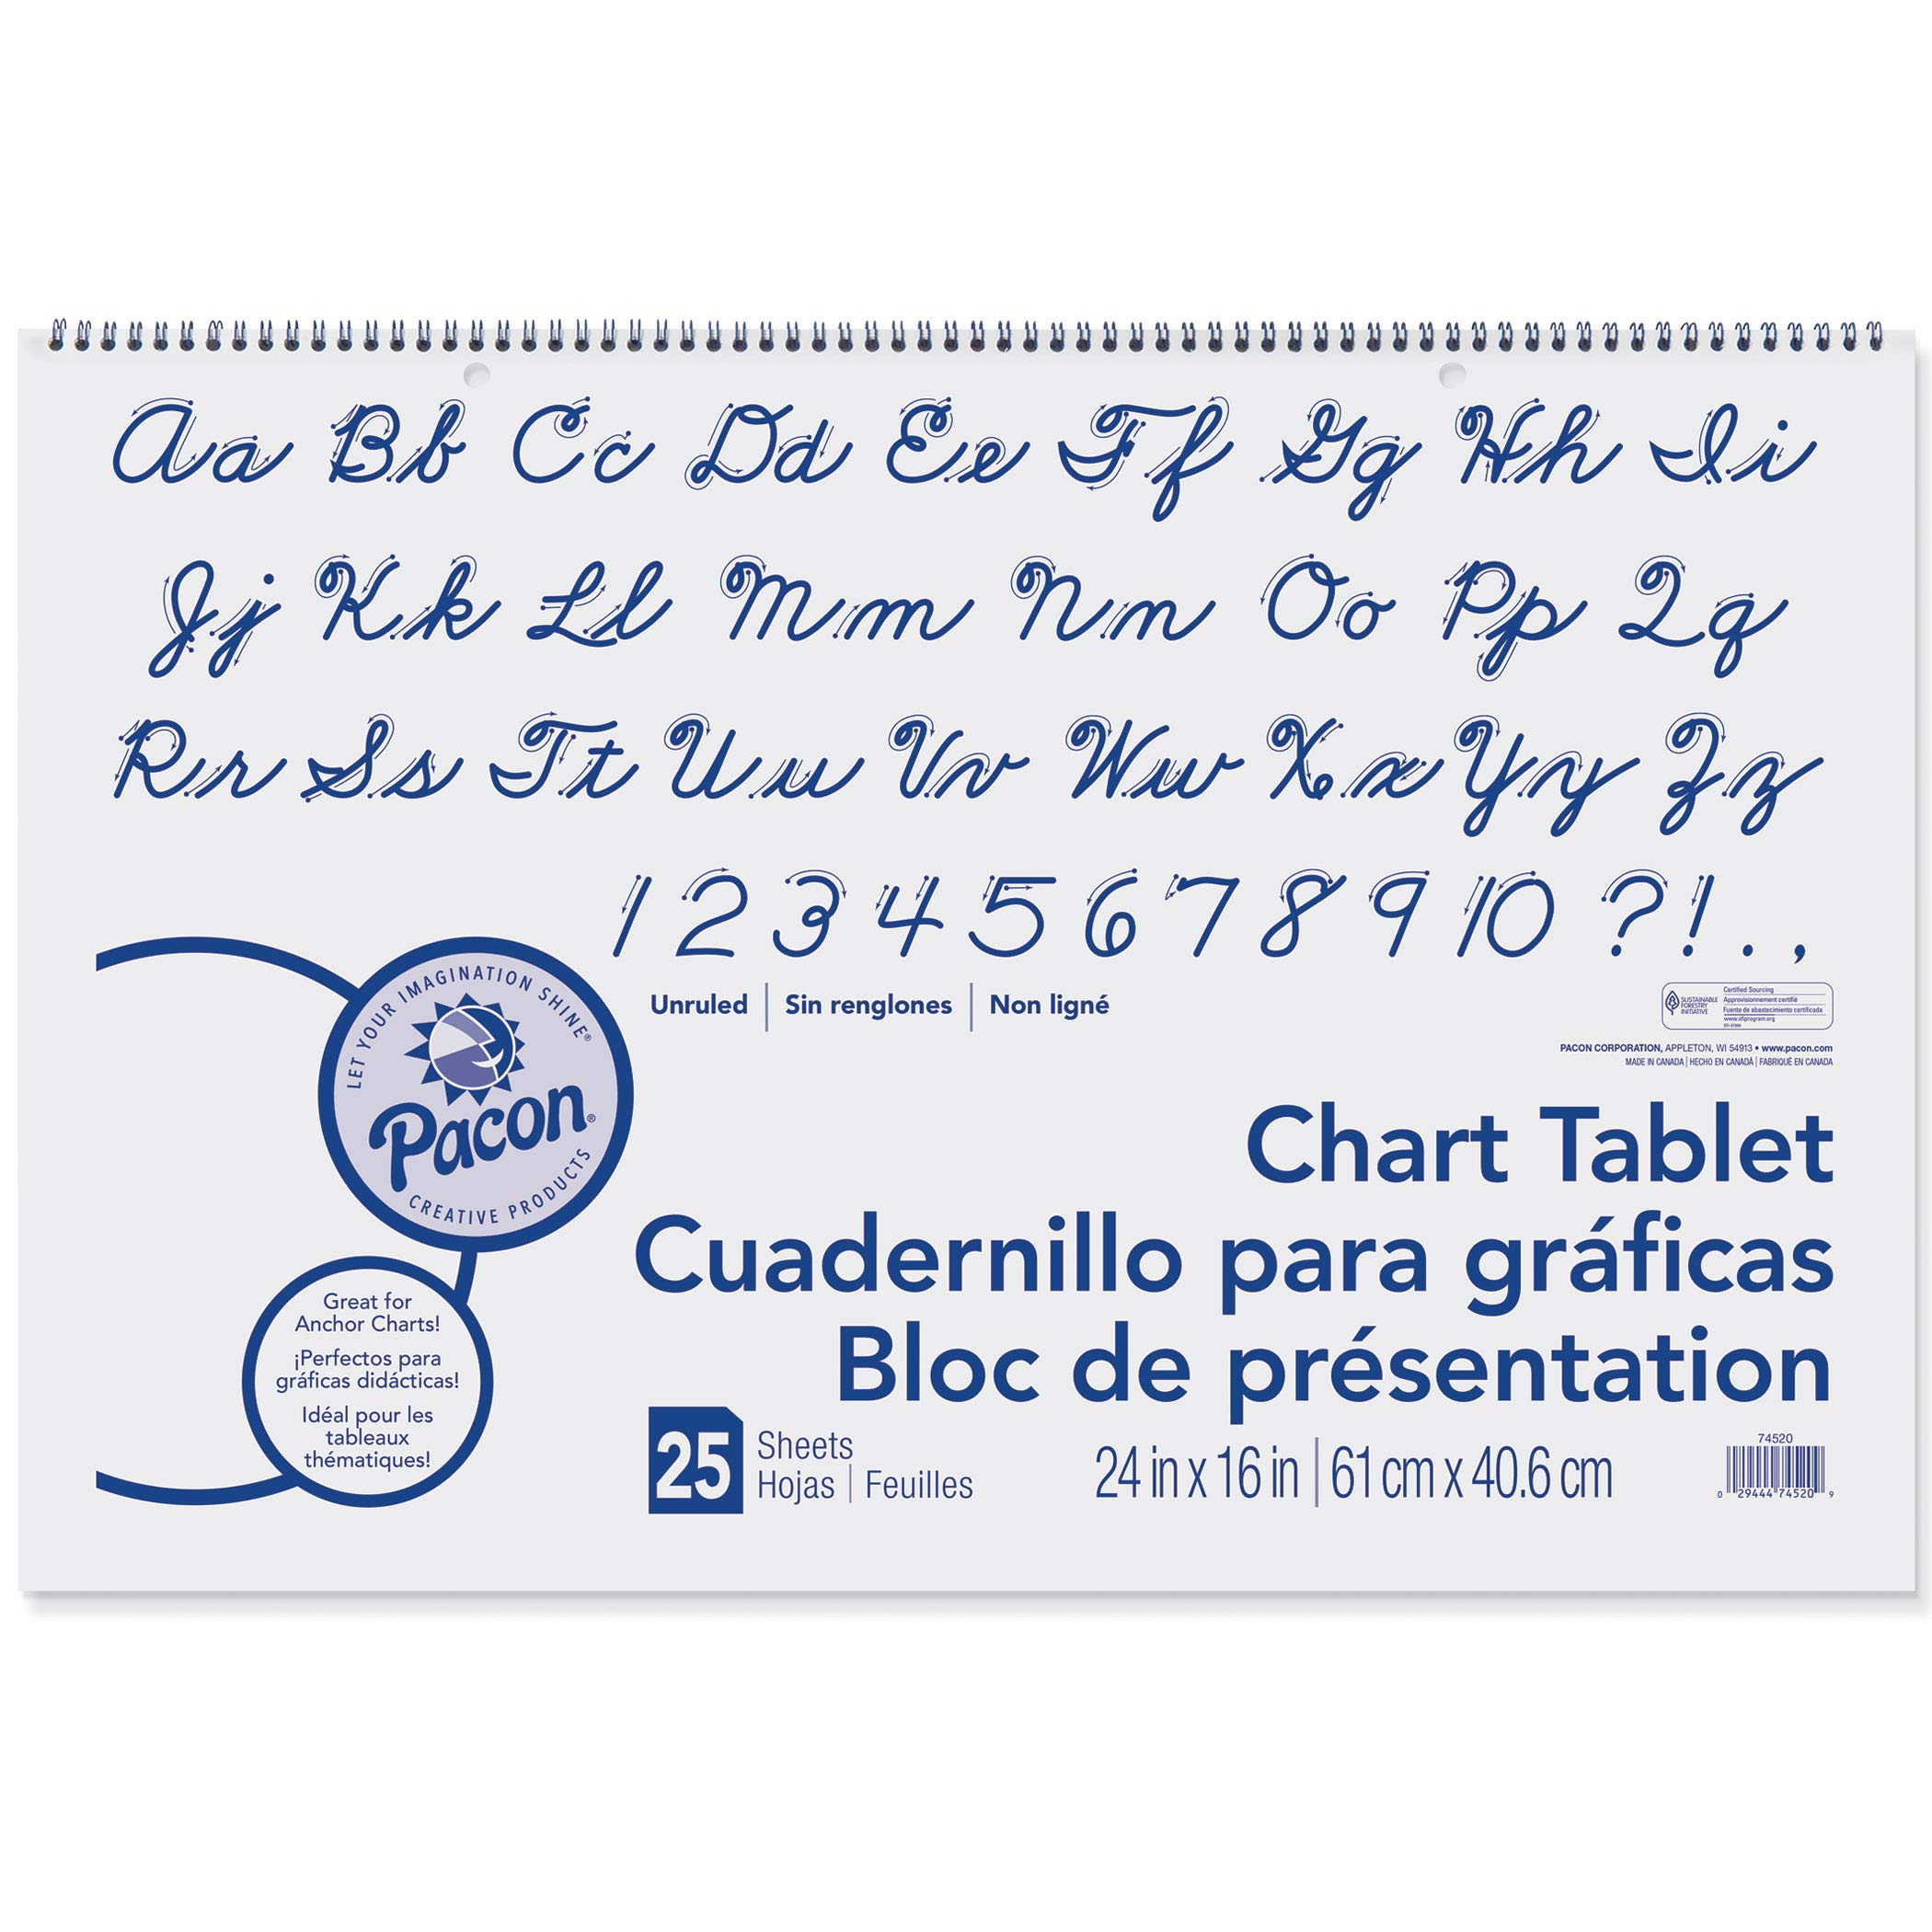 Pacon PAC74520BN Chart Tablet, Cursive Cover, Unruled, 24'' x 16'', 25 Sheets, Pack of 6 by PACON